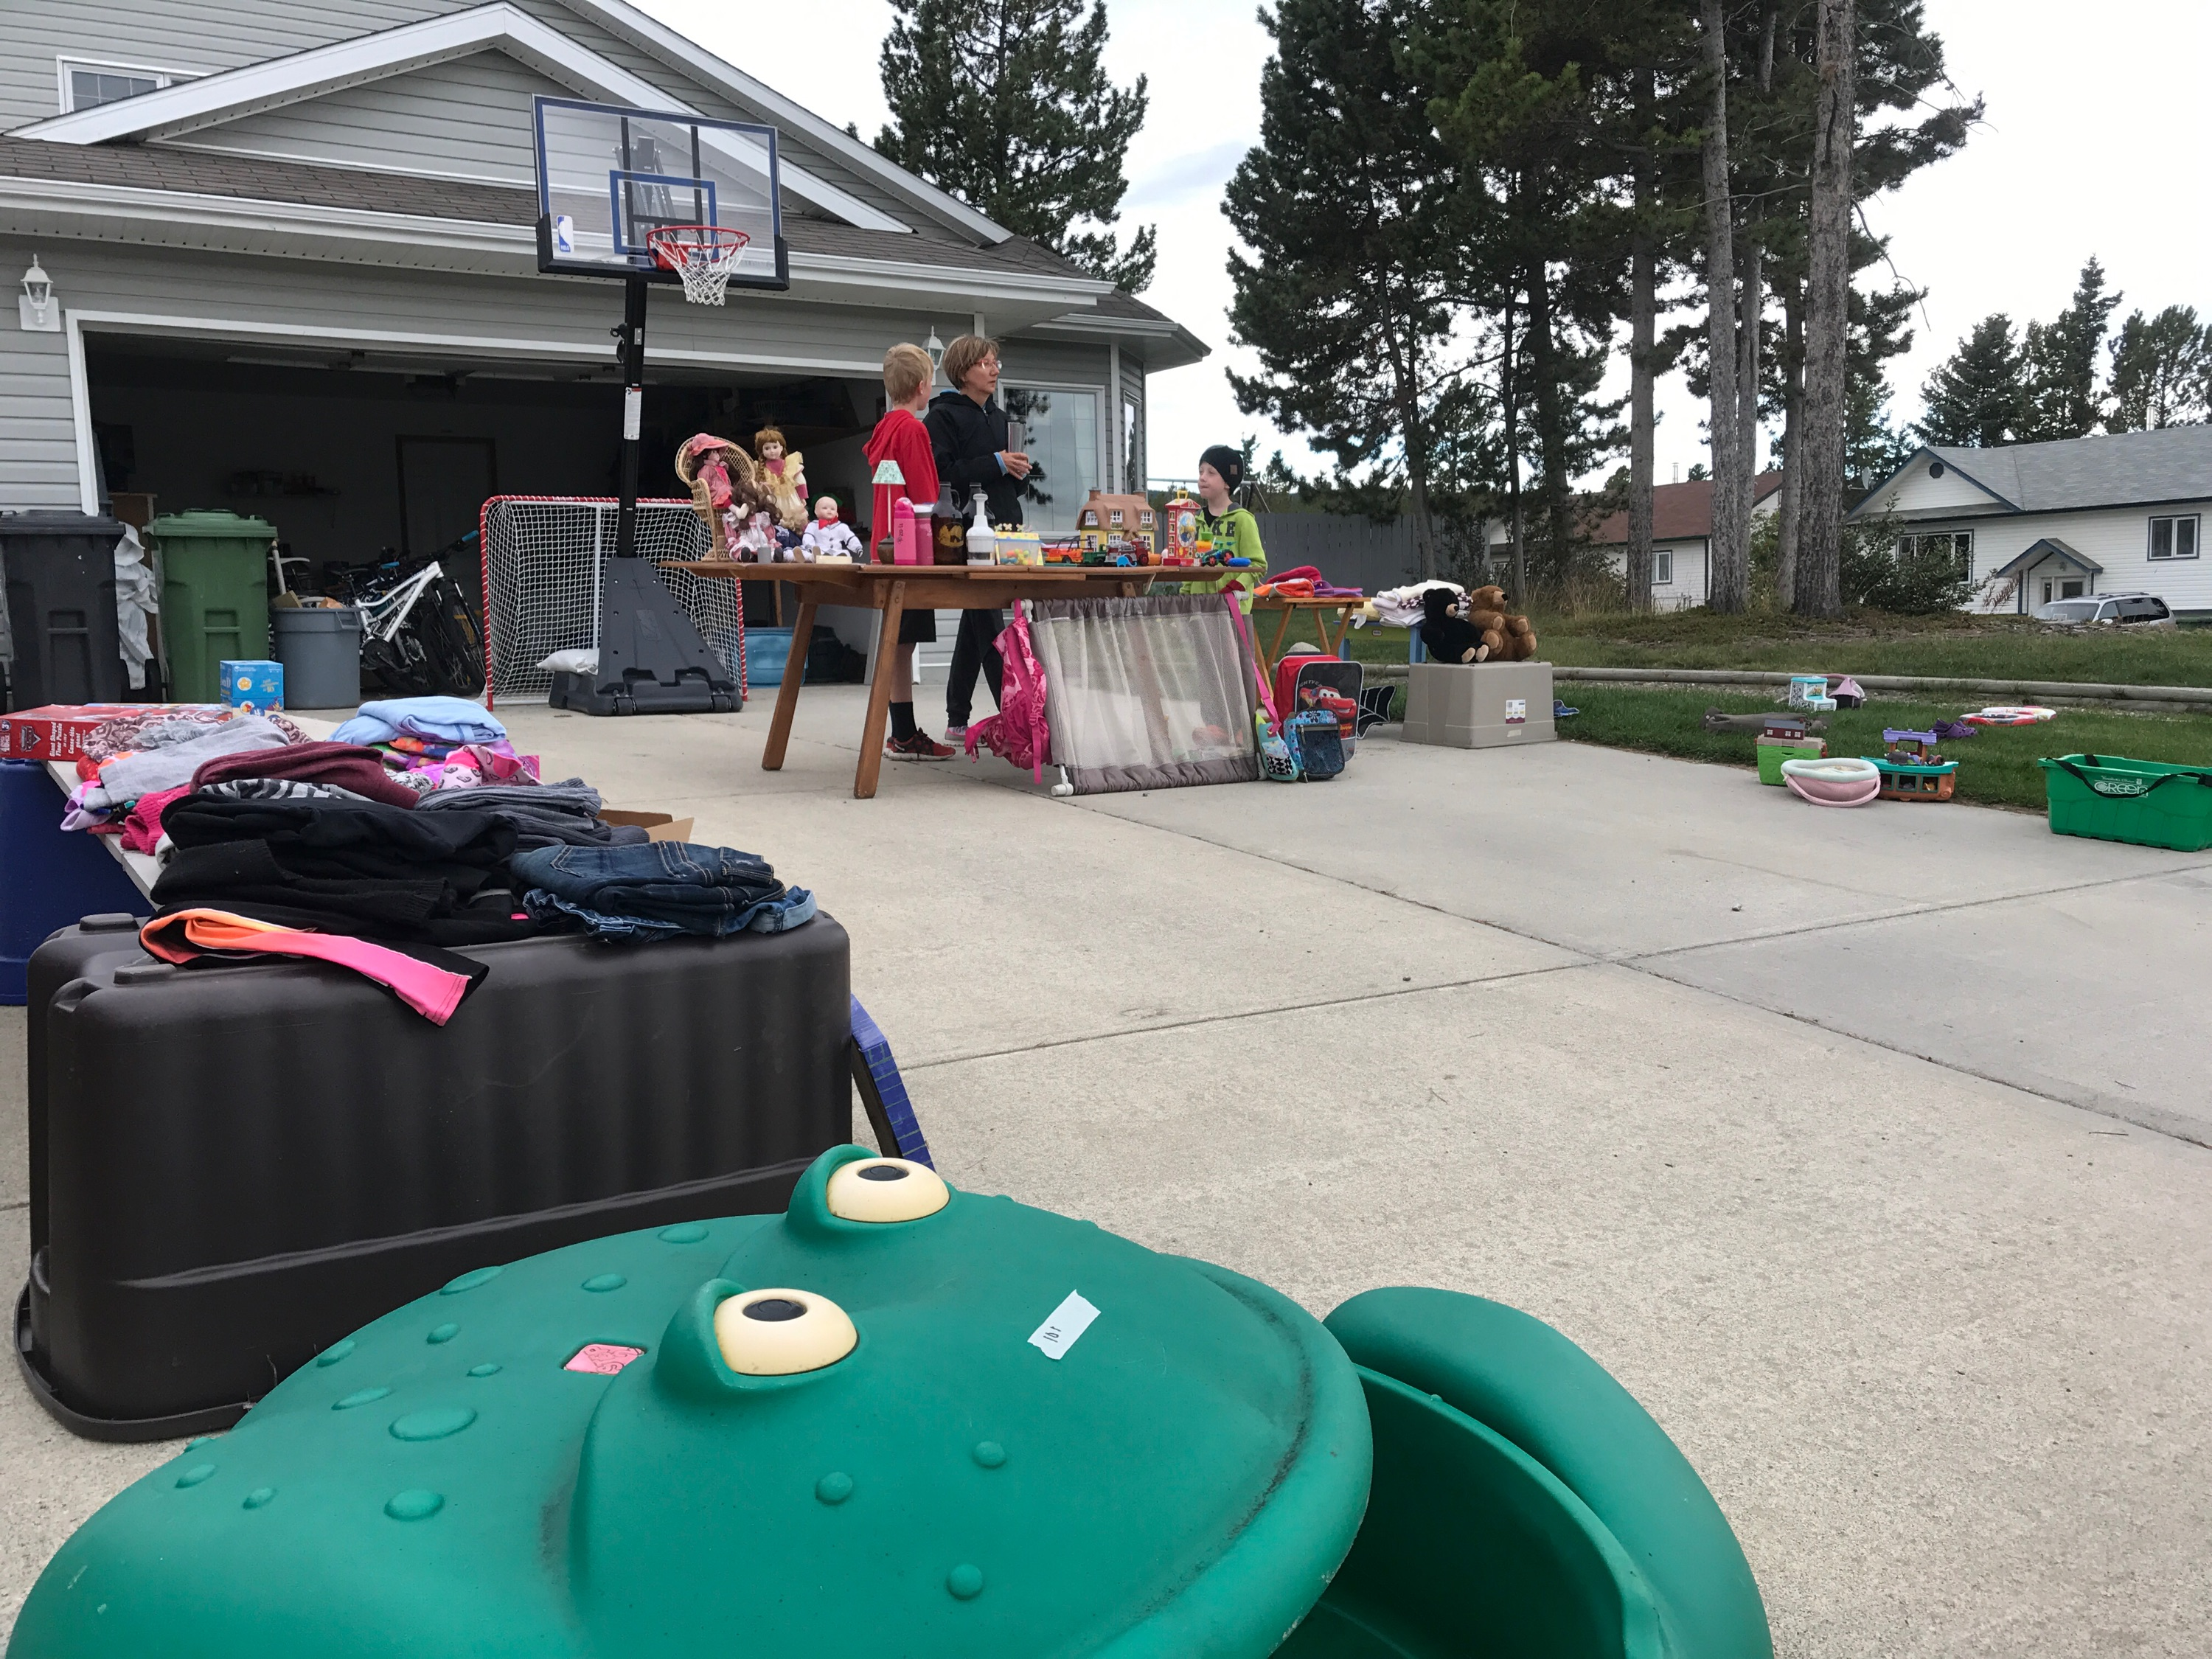 Garage sale at 1 Spinel Place in Copper Ridge today!